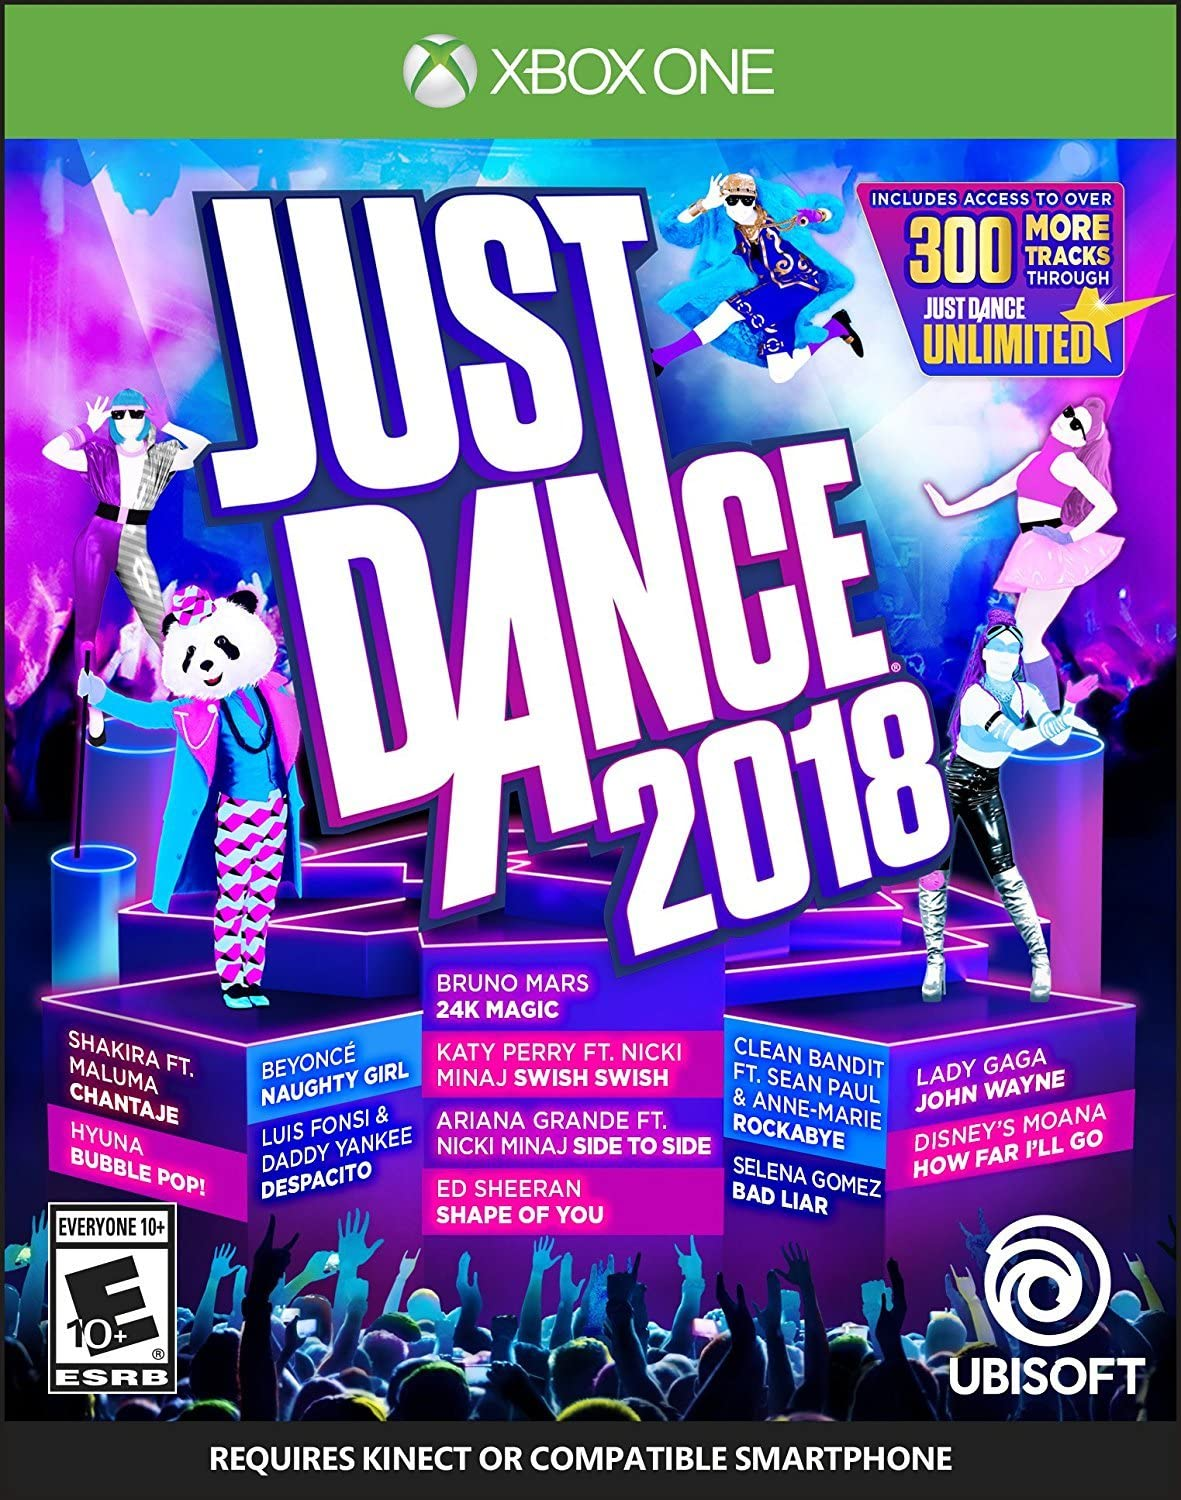 XBOX ONE Just Dance Racing Bundle (2 artículos): S de Xbox One 500 GB Console With Forza Horizon 3 Hot Wheels y Just Dance 2018 Juego: Microsoft: Amazon.es: Electrónica